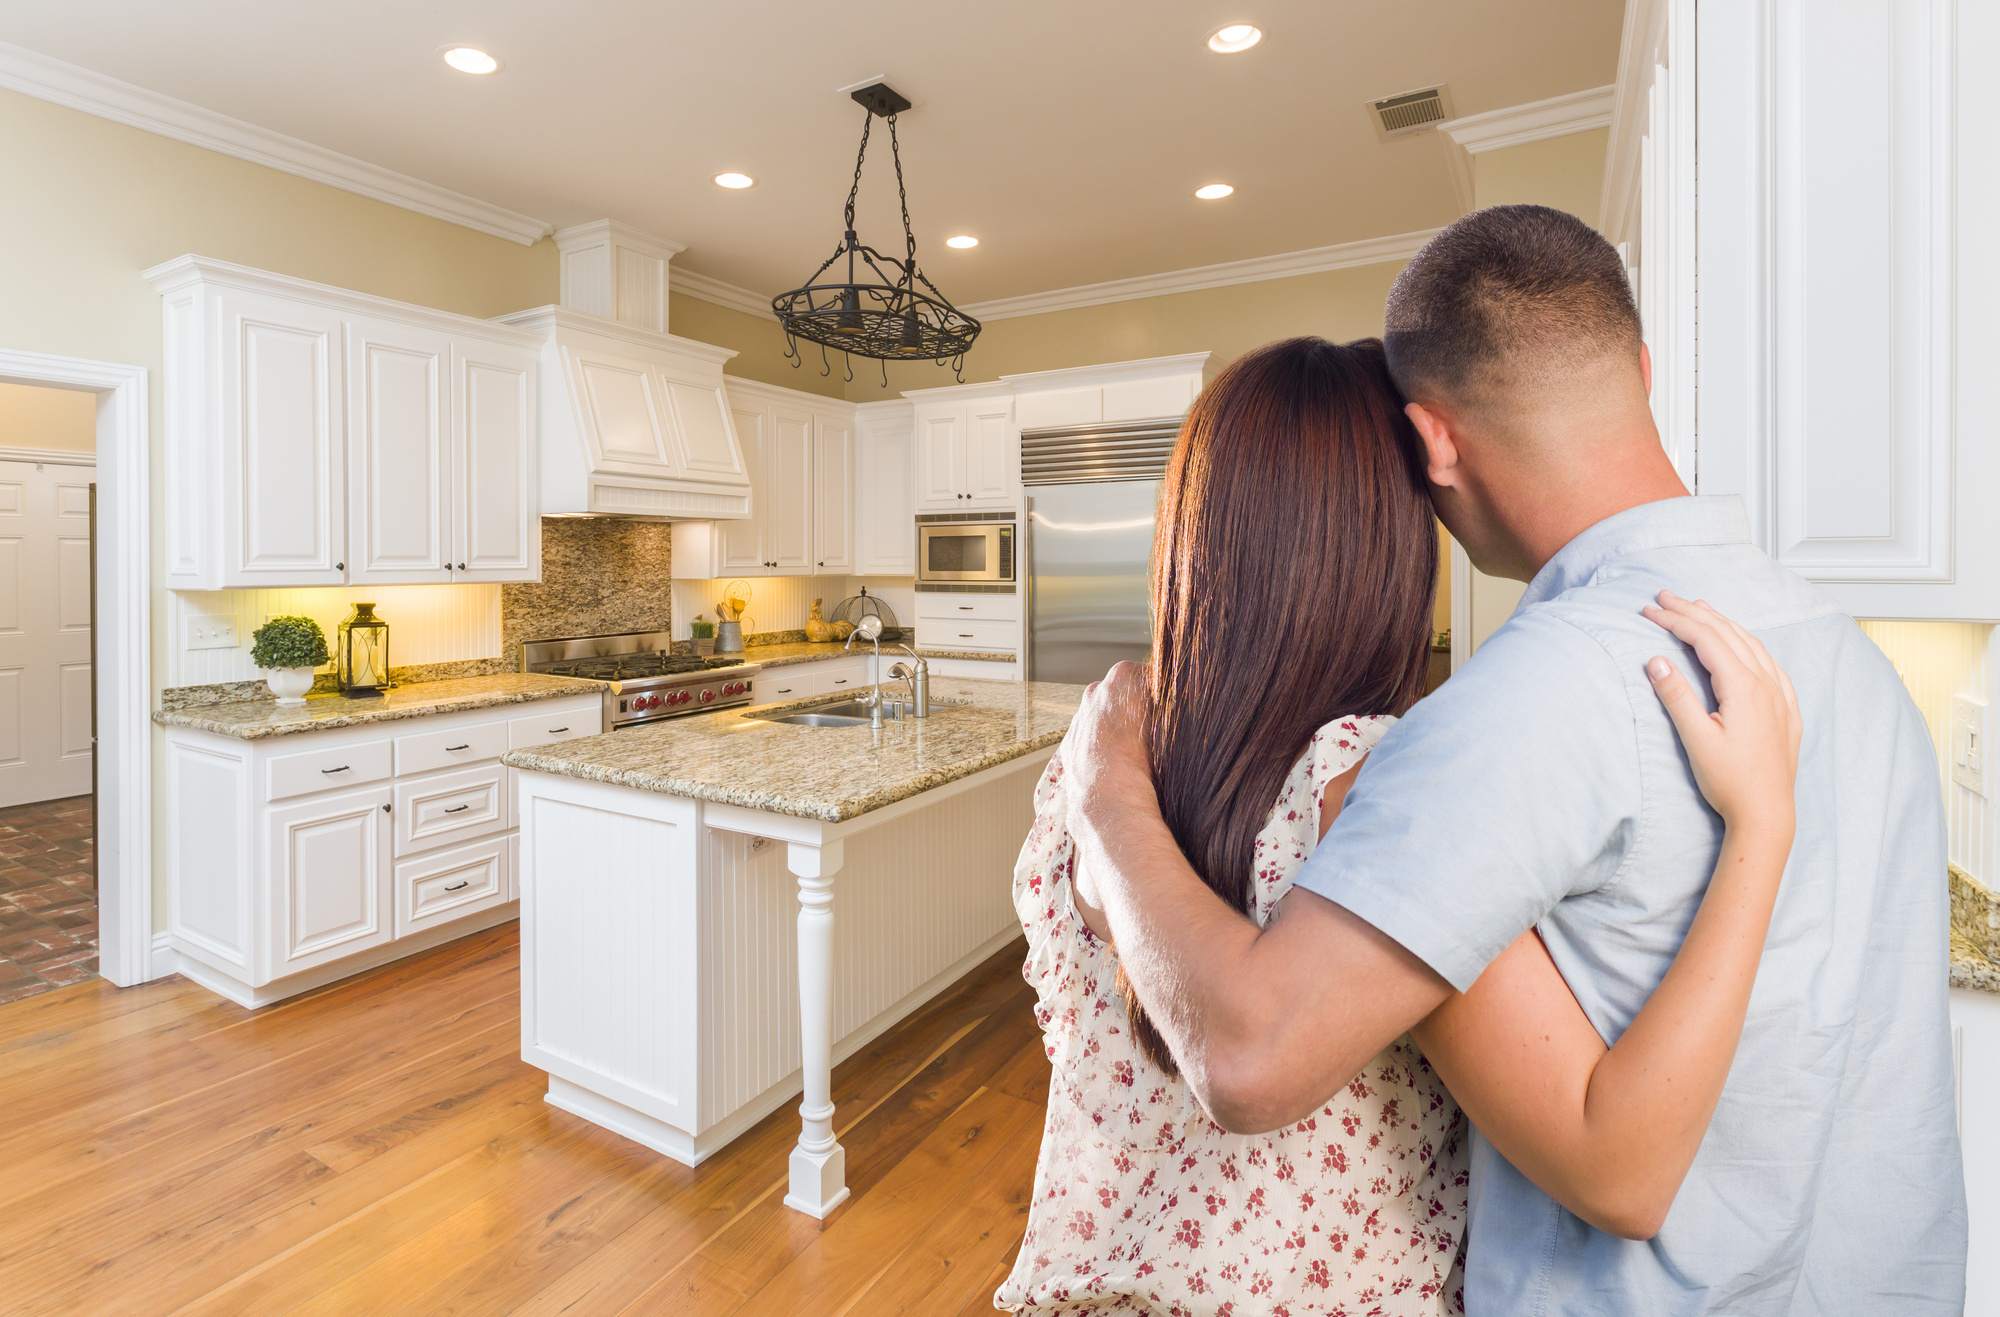 It is important to make sure you properly prepare your space before going through a kitchen remodel. Follow this guide for everything you need to know.